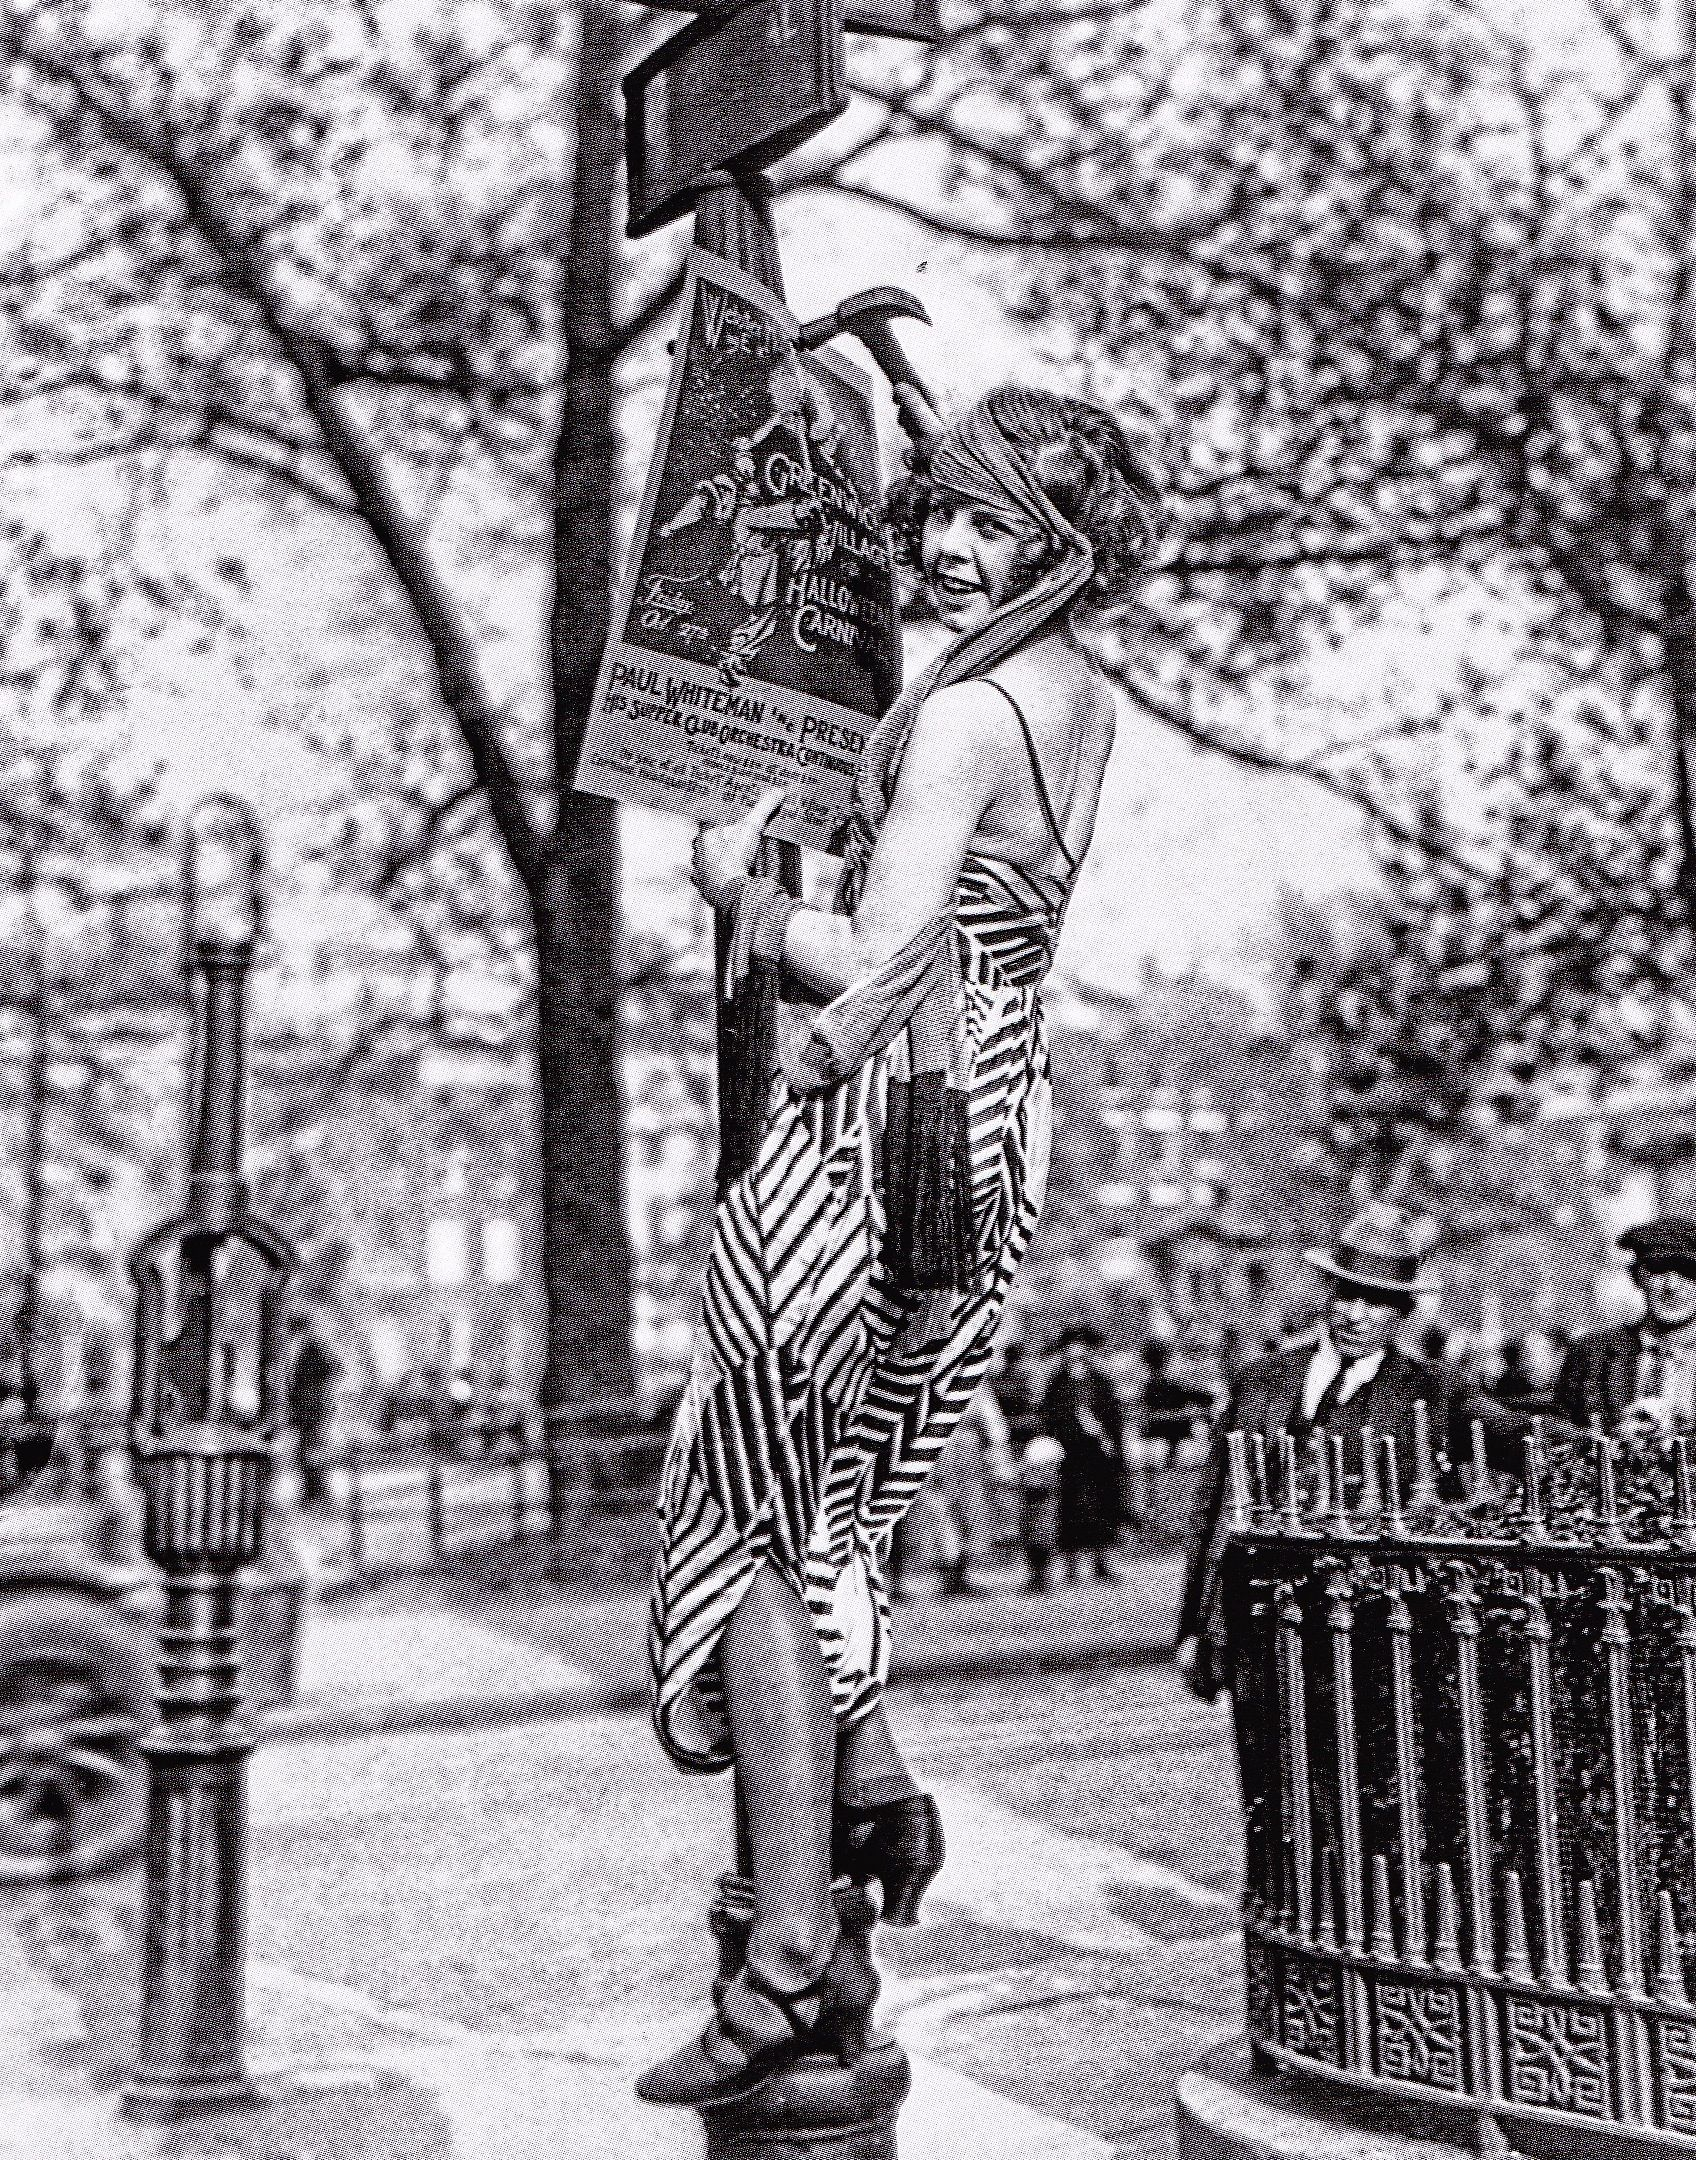 Nyc S Greenwich Village Flapper Girl From The Roaring Twenties Hanging Up A Poster In